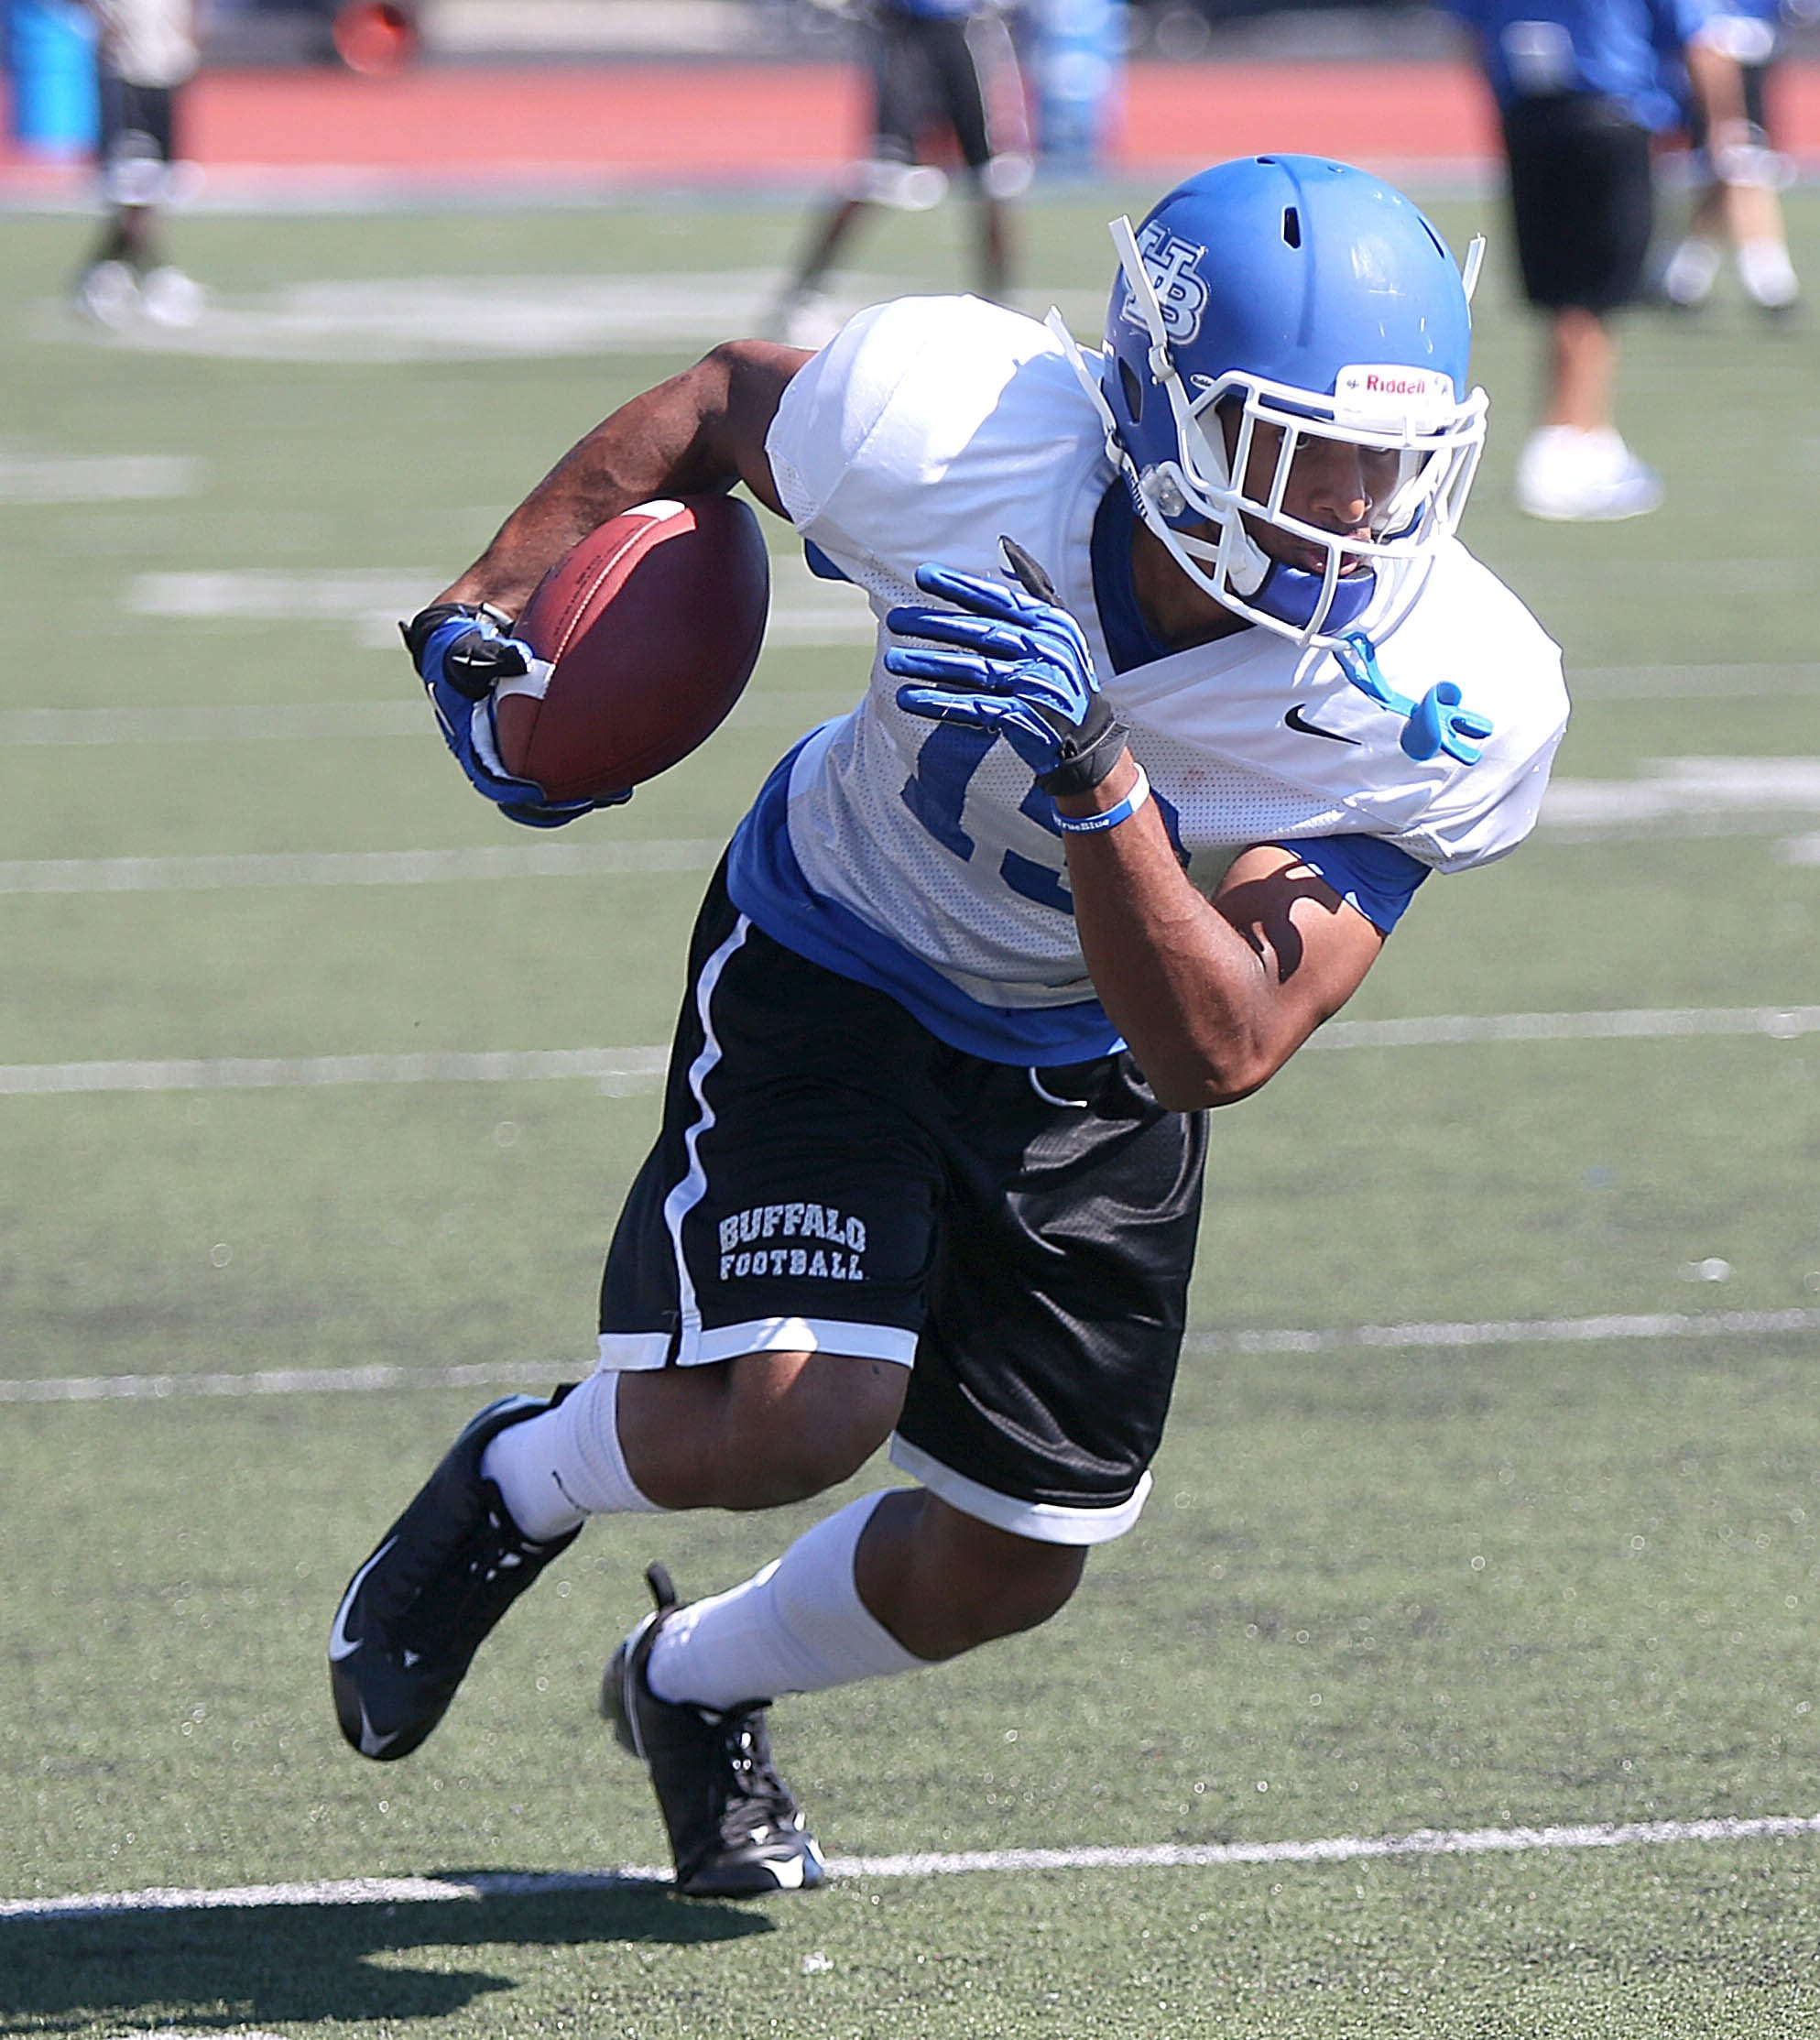 Wide receiver Devon Hughes (13) finds some open field during receiver drills at University at Buffalo Bulls football practice at UB North on Friday, Aug. 23, 2013.  (Robert Kirkham/Buffalo News)